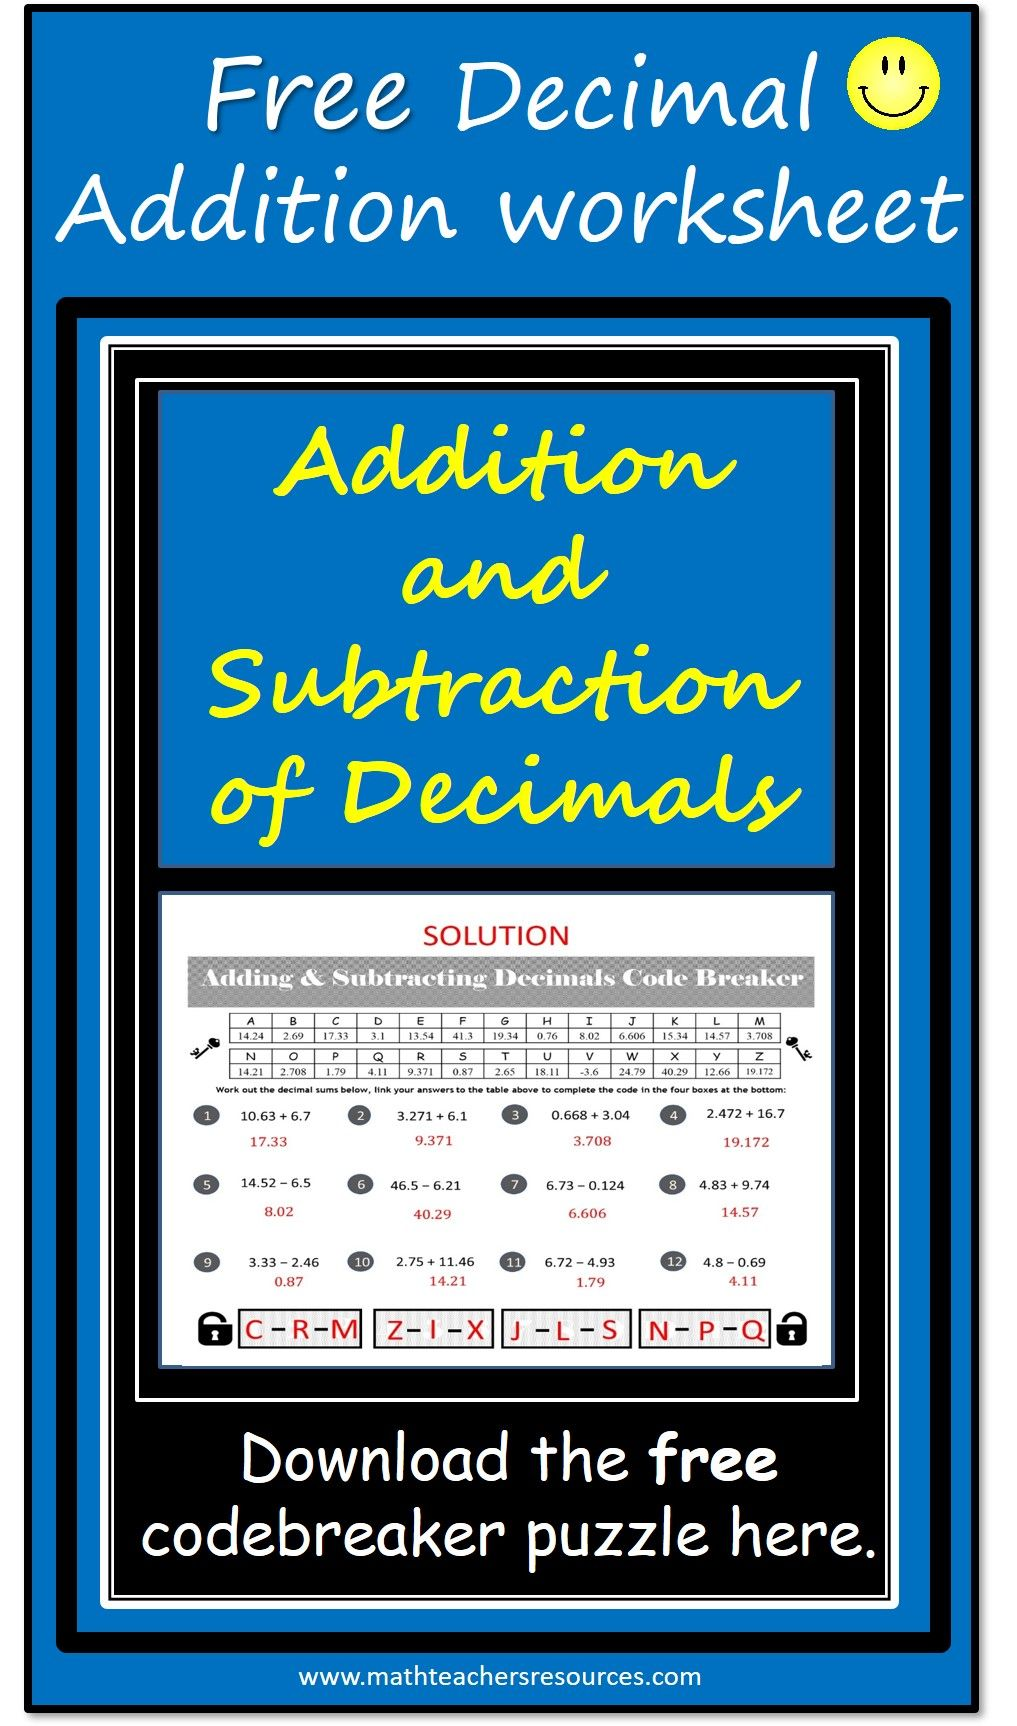 Addition and Subtraction of Decimals game FREE Make